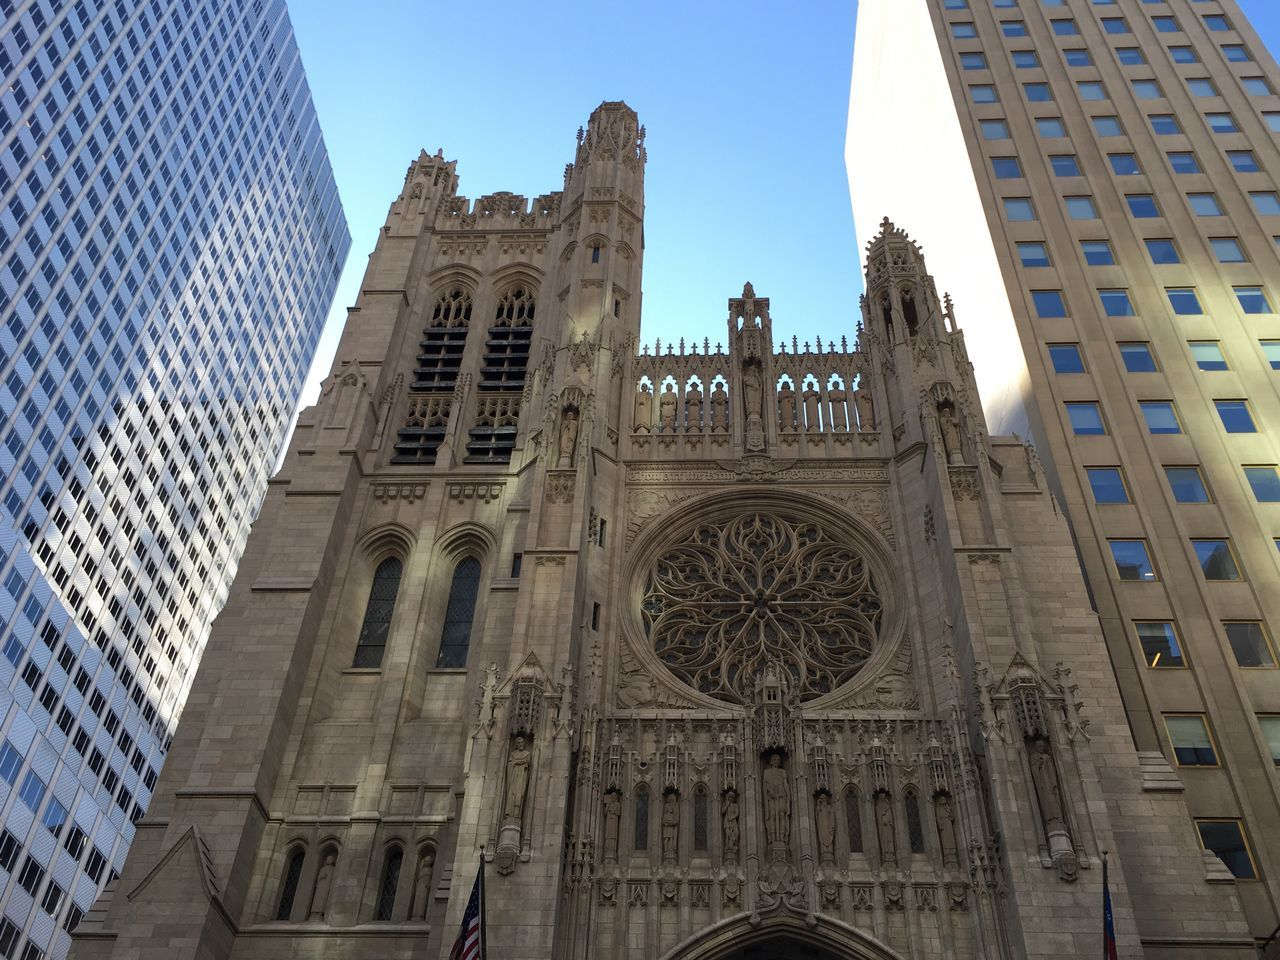 Architecture Built Structure Building Exterior Low Angle View Religion Place Of Worship Travel Destinations Spirituality History Day Façade No People Sky Outdoors Skyscraper City Clear Sky St Thomas Church NYC ILoveMyCity